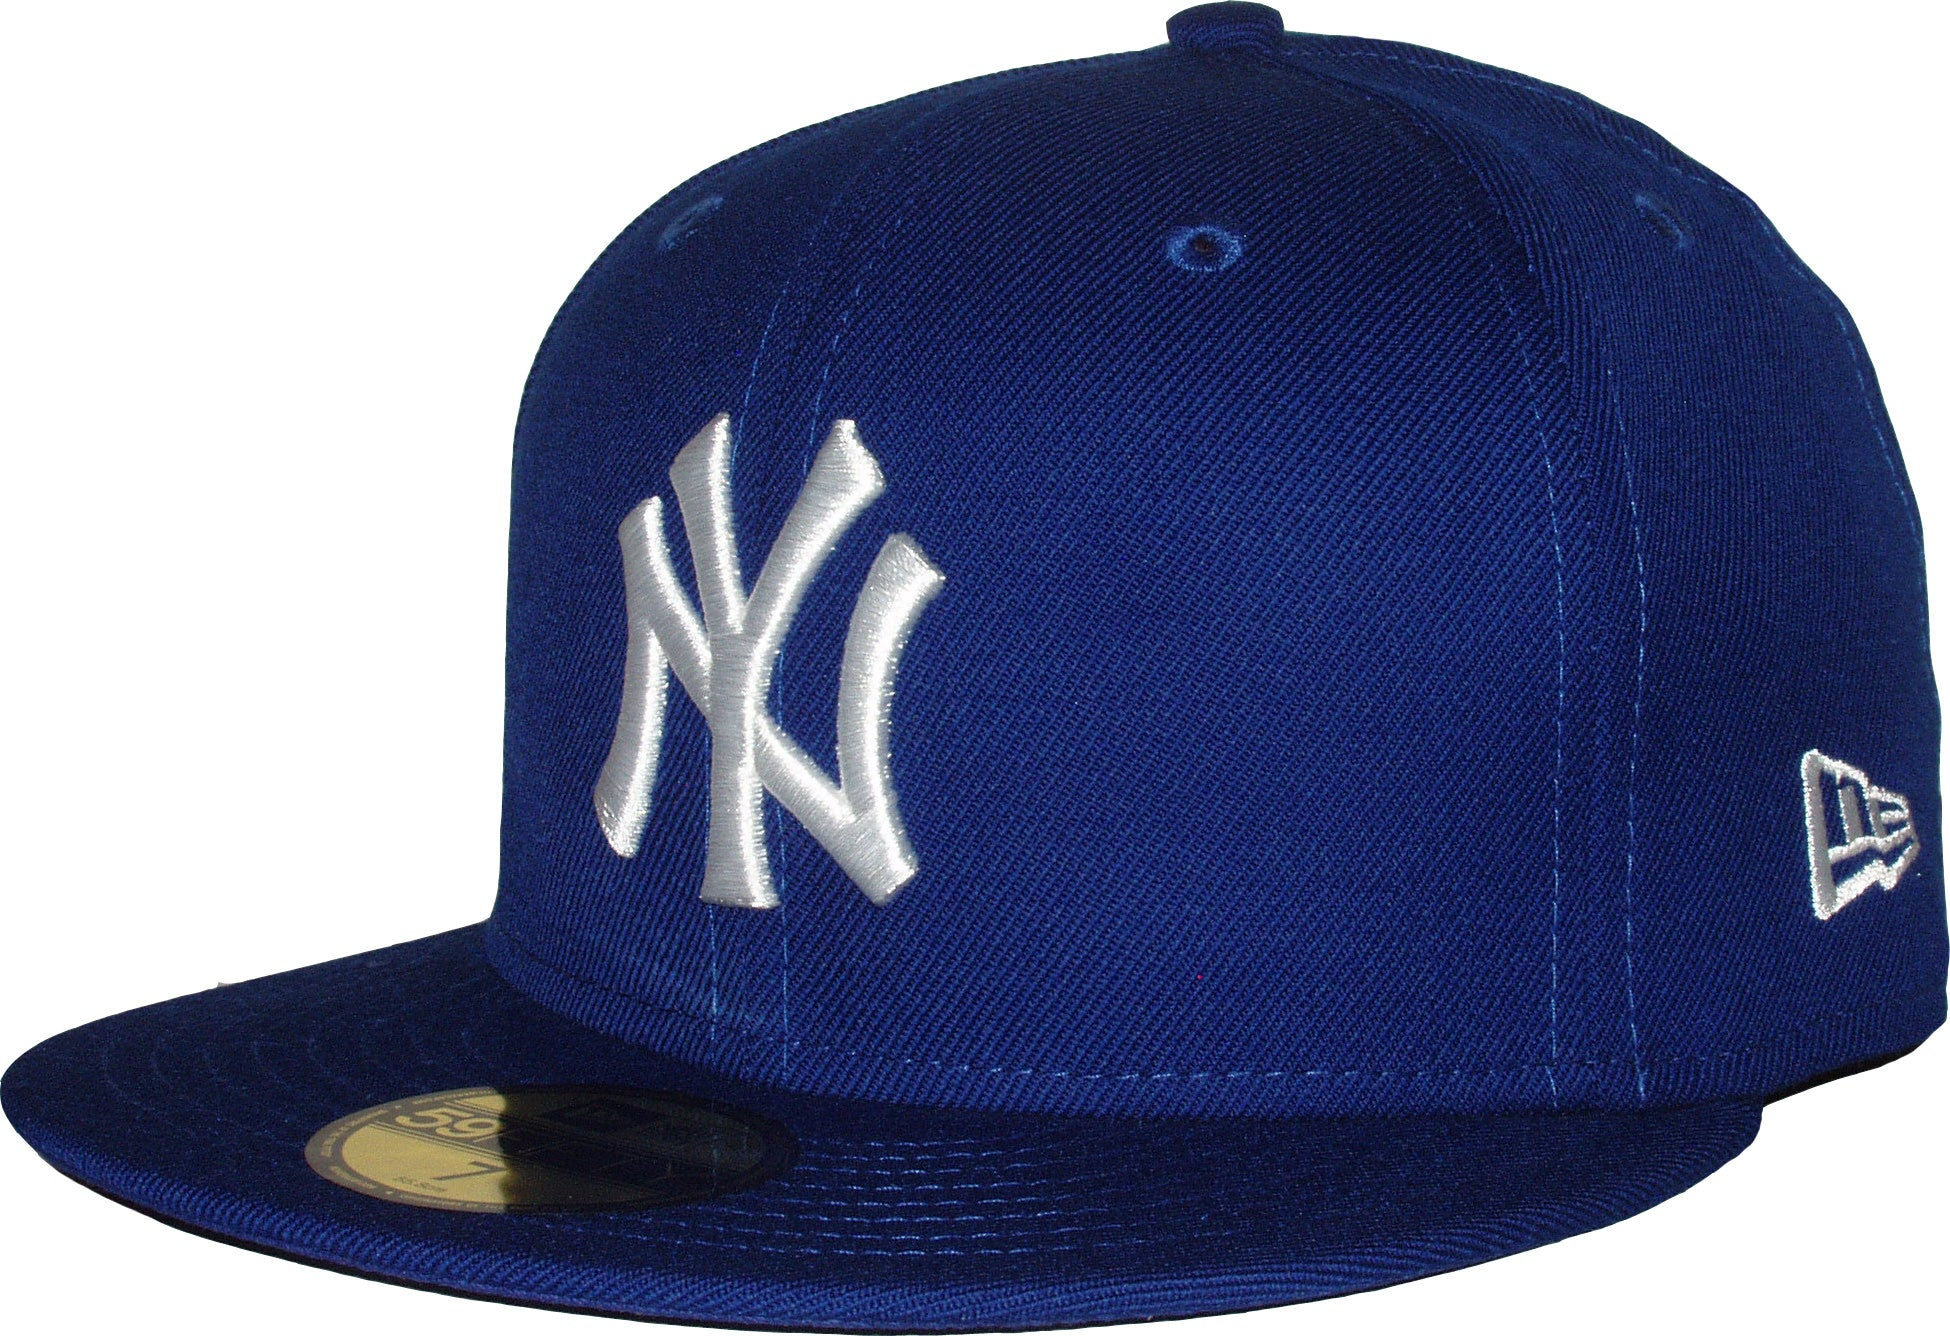 NY Yankees New Era 5950 MLB Royal Blue White Baseball Cap + Gift Box ... 59fed1e37a1